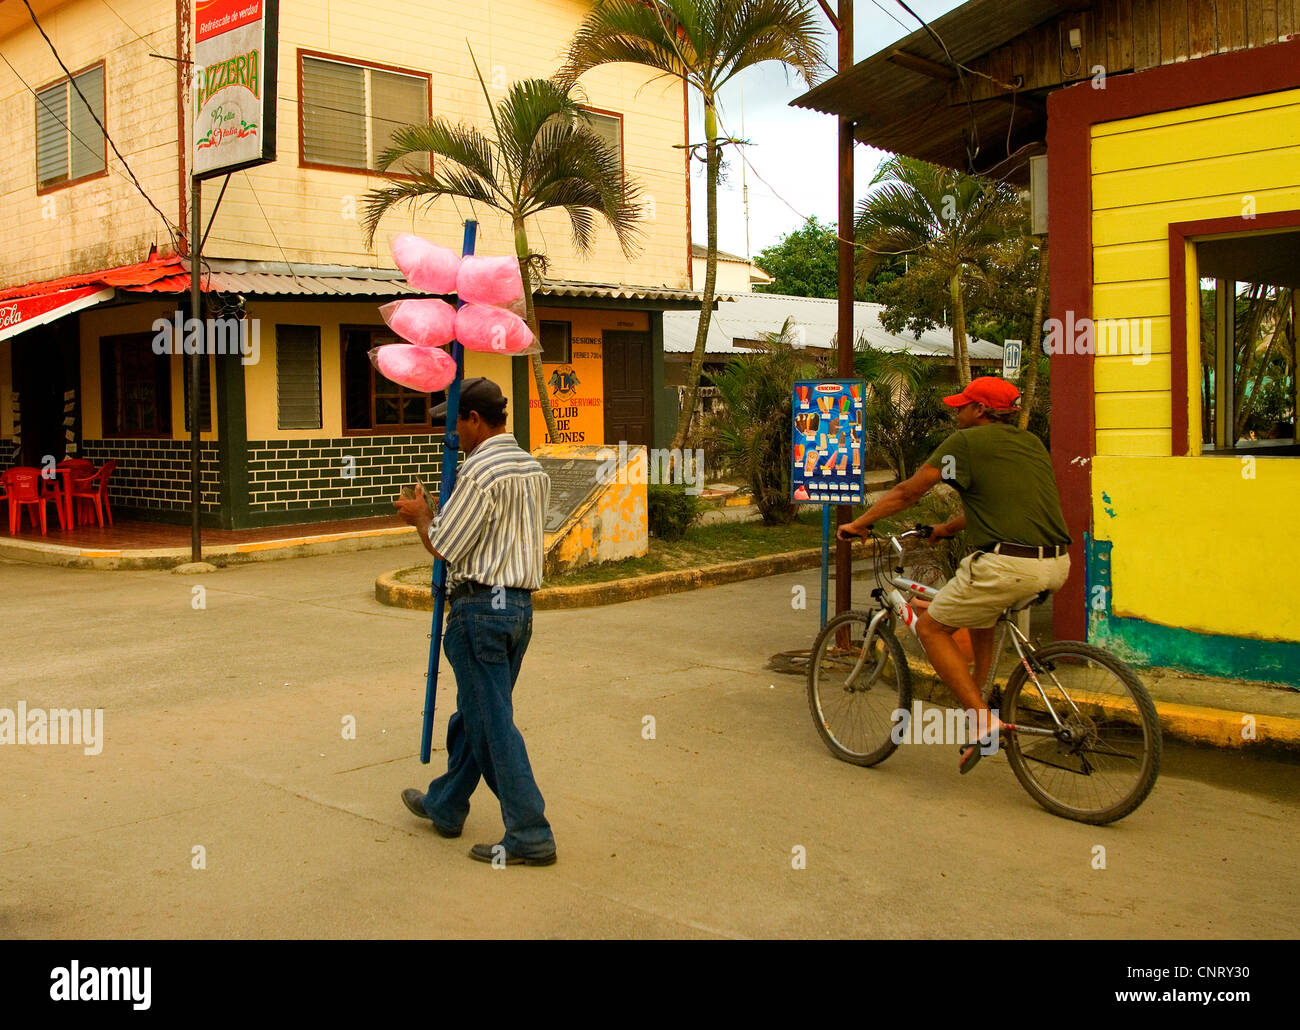 Downtown Tela on a street fronting the Caribbean Sea. - Stock Image